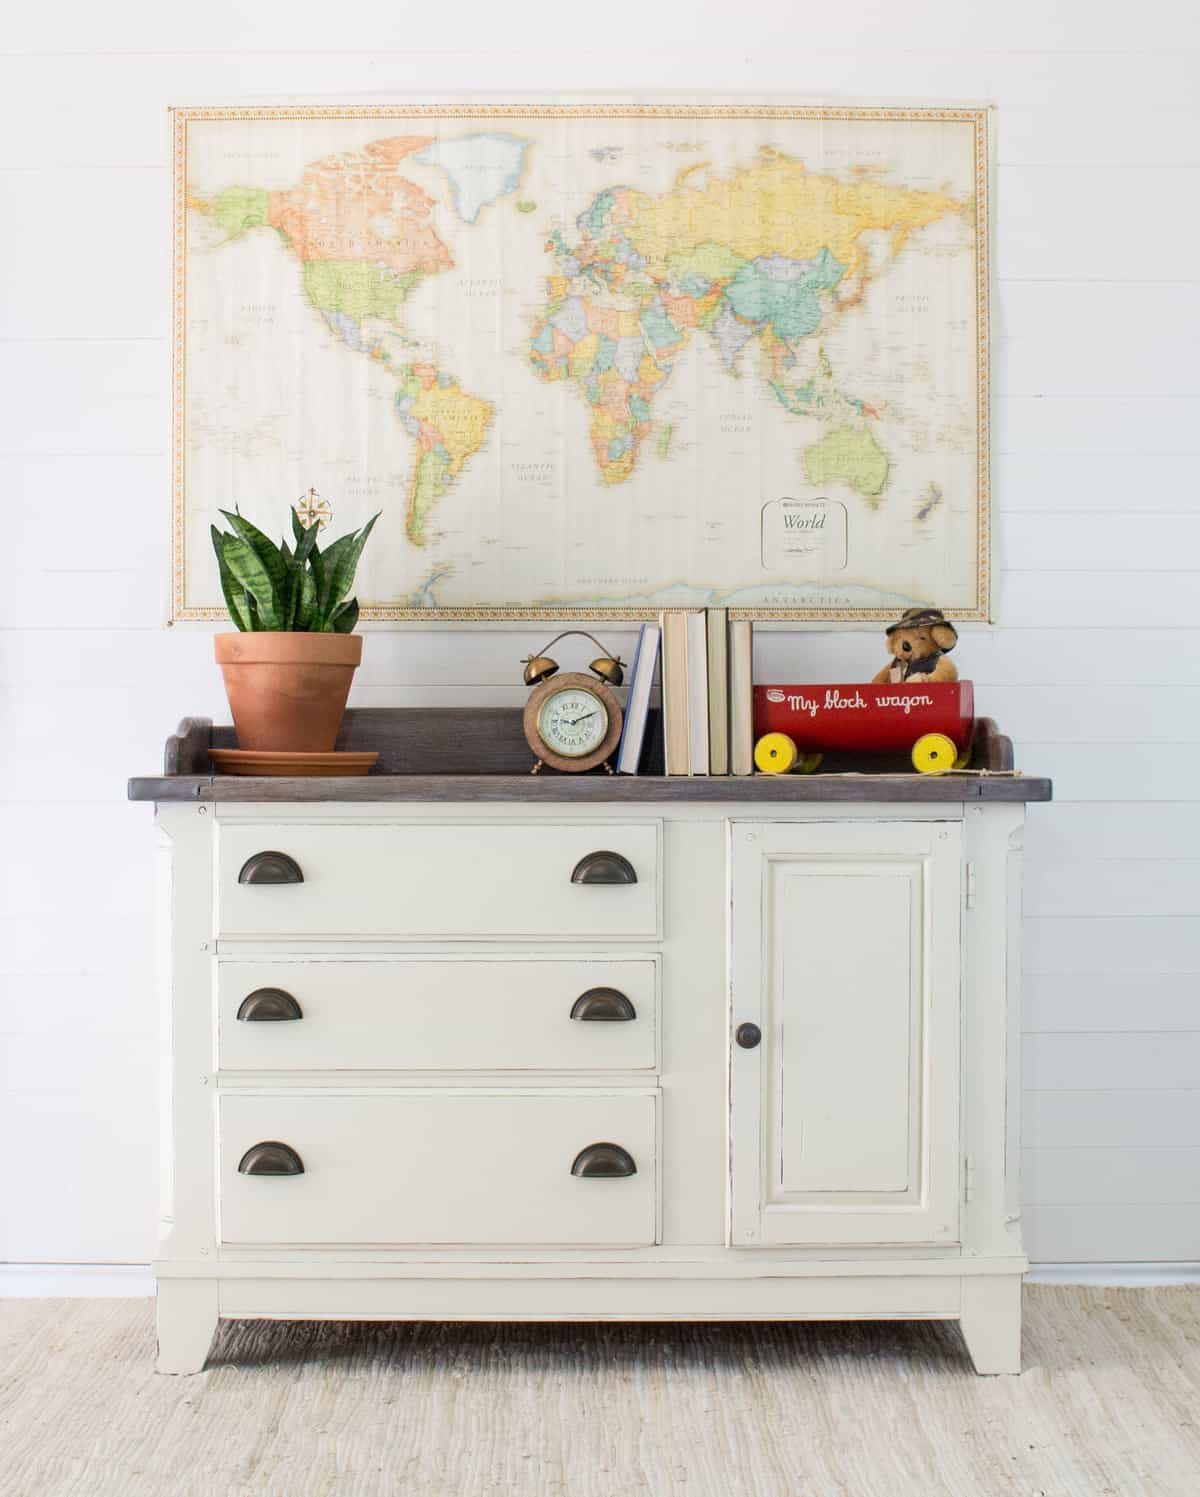 Top 10 paint colors from Country Chic Paint - vanilla frosting off white painted changing table with map on wall